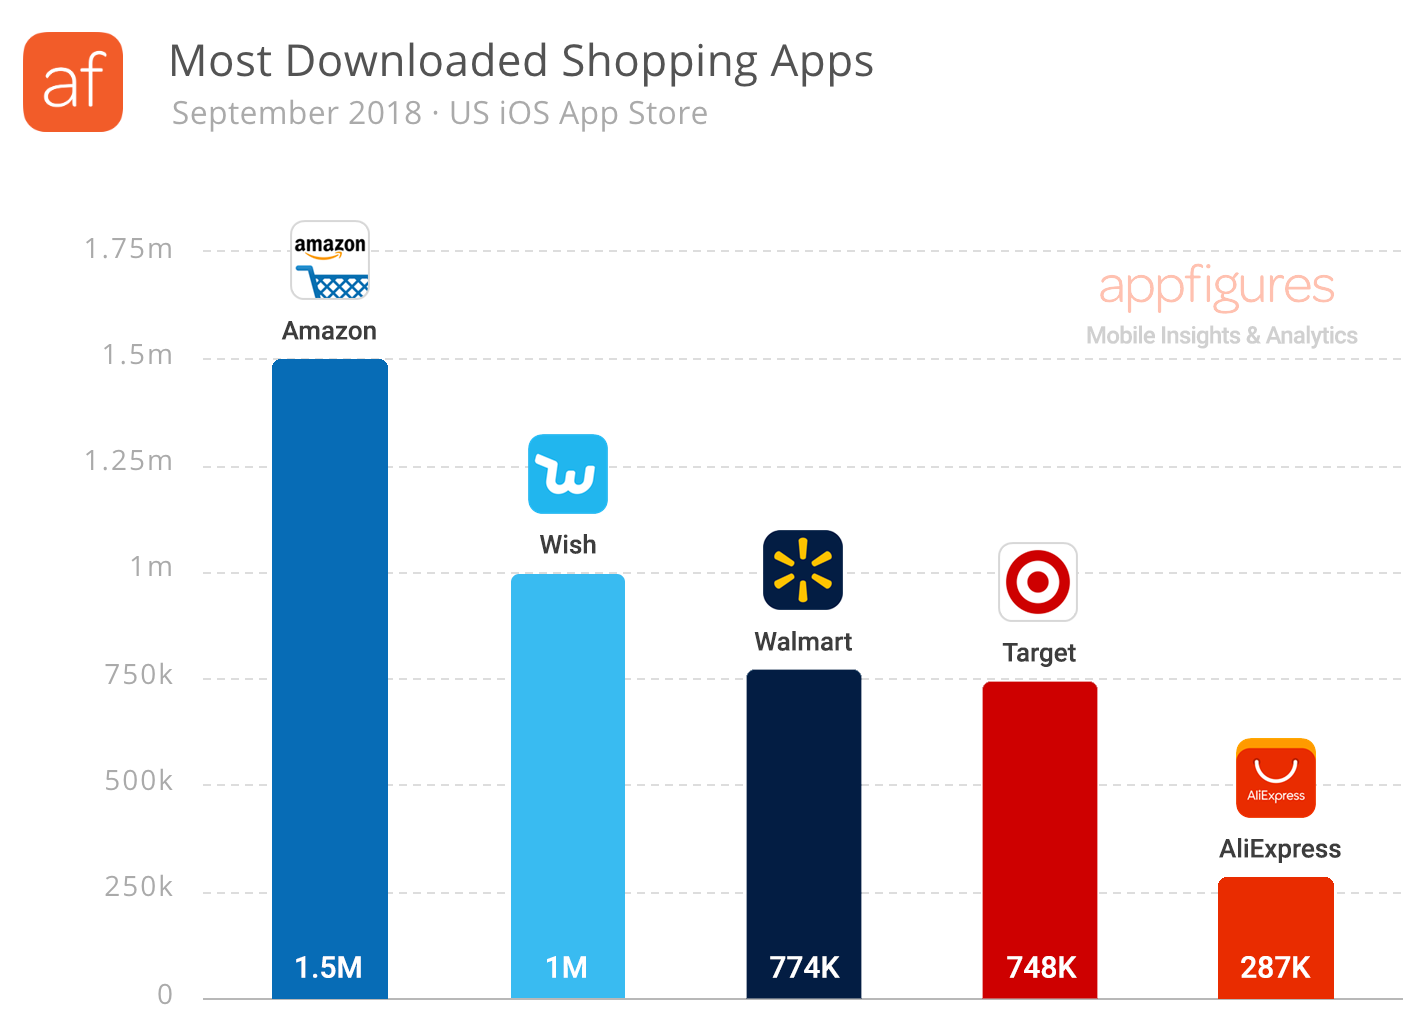 The most downloaded shopping apps in the U.S. App Store (September 2018)